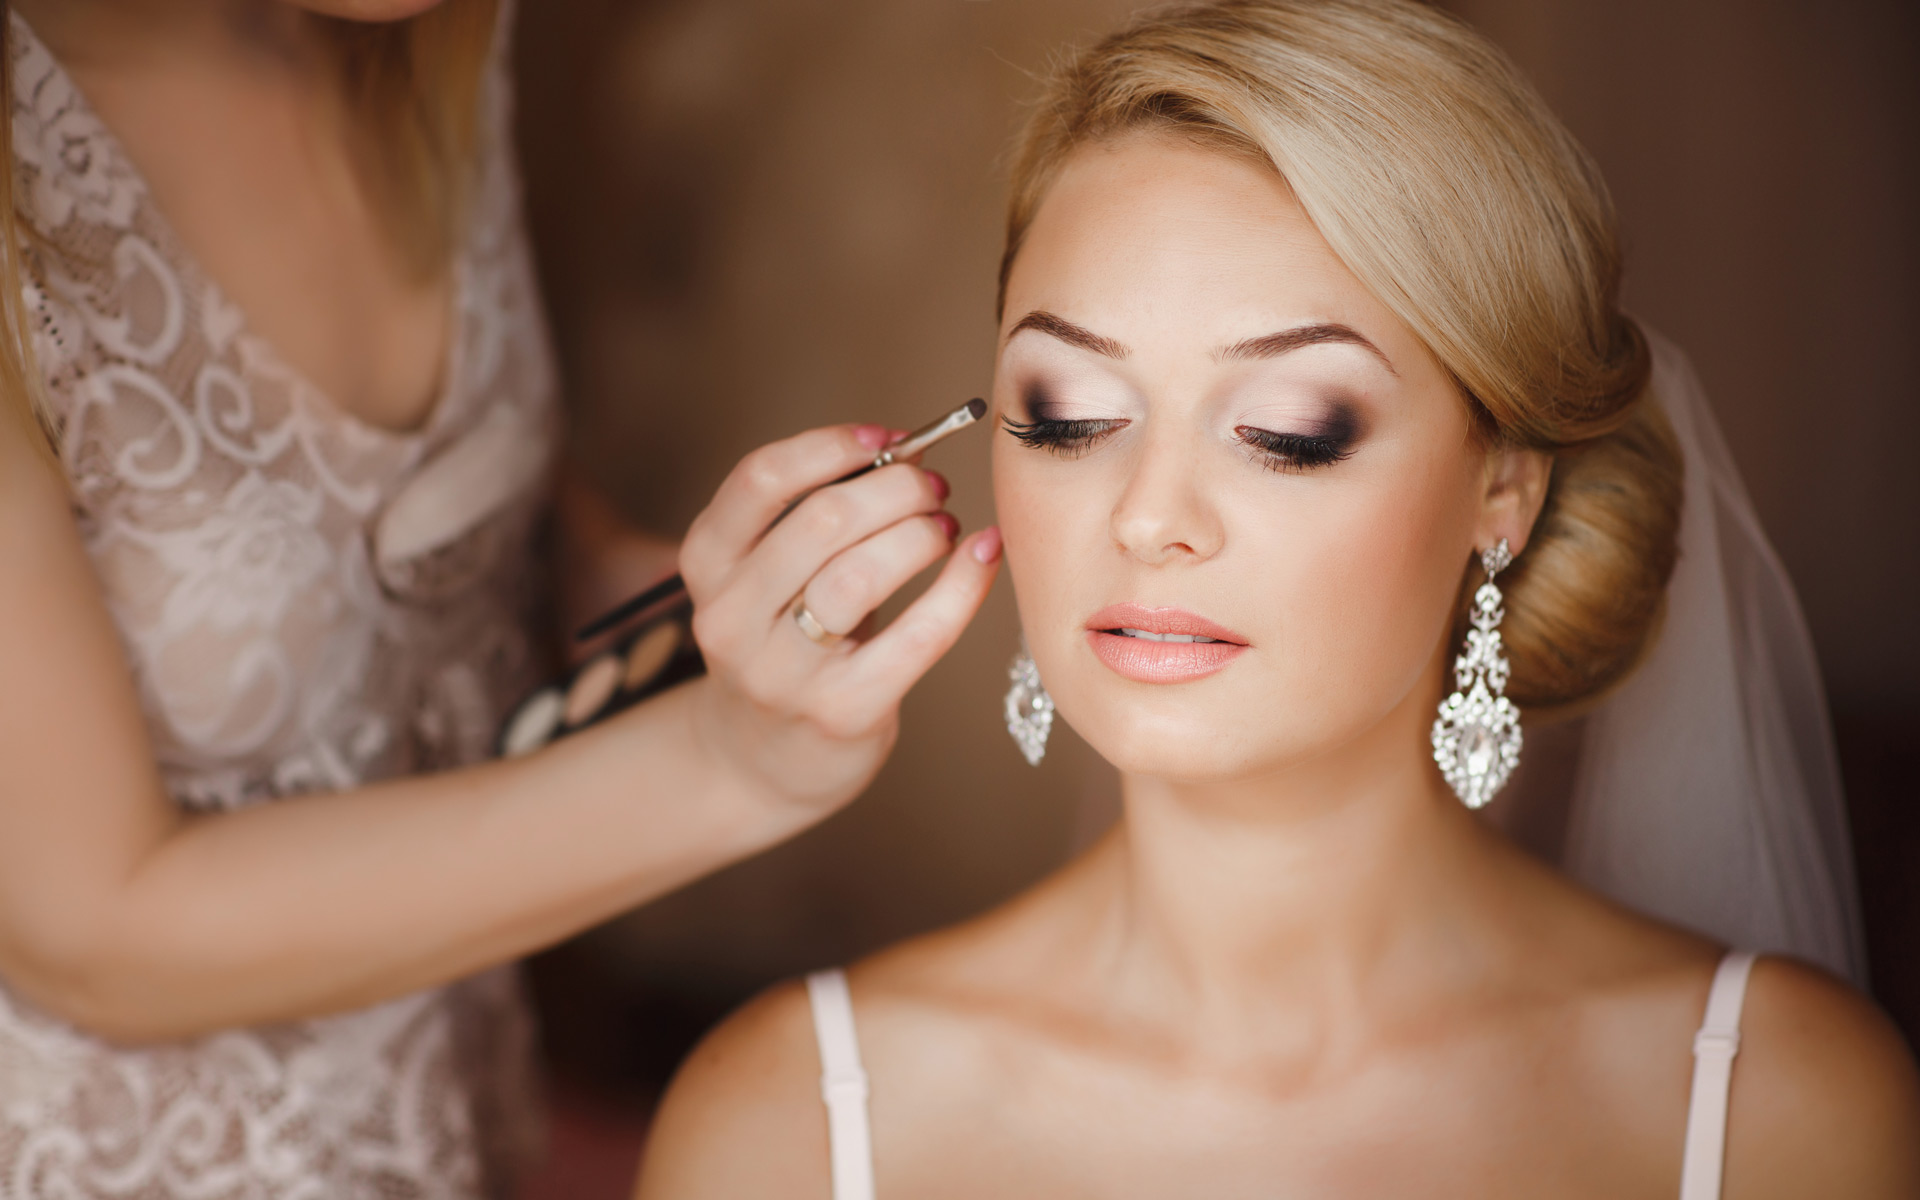 10 TOP TIPS: How to Get the Most Out of Your Wedding Hair and Makeup Trial